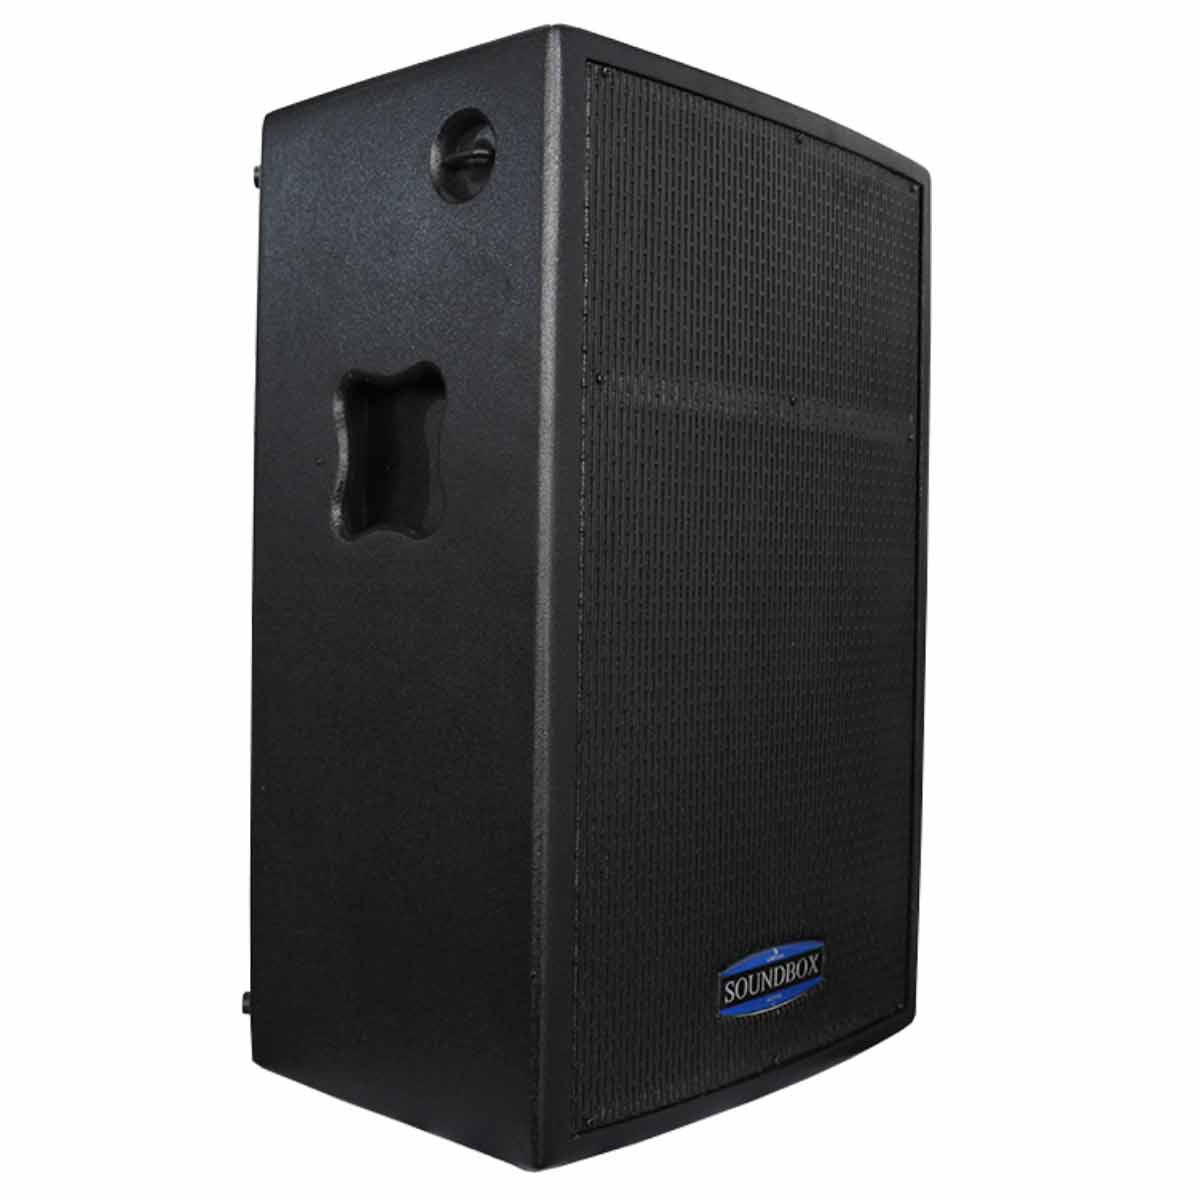 Caixa Passiva Fal 15 Pol 250W PA / Monitor - MS 15 SoundBox